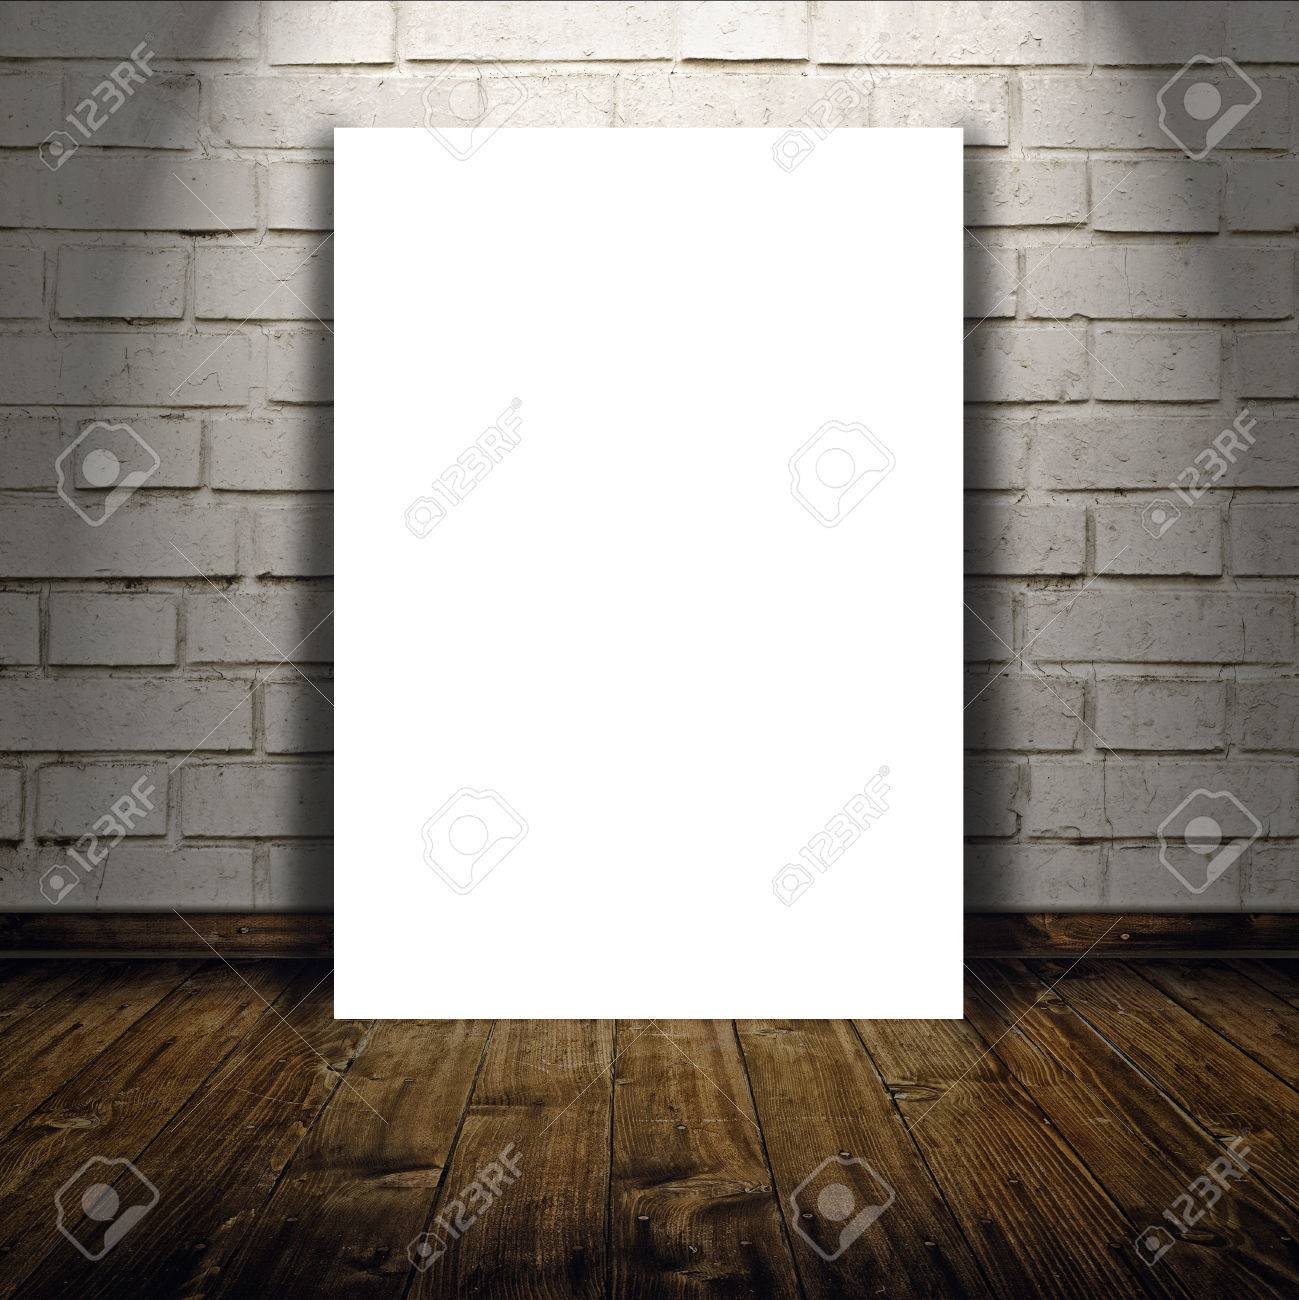 Blank poster as copy space template for your artwork or design blank poster as copy space template for your artwork or design in vintage empty room interior pronofoot35fo Choice Image